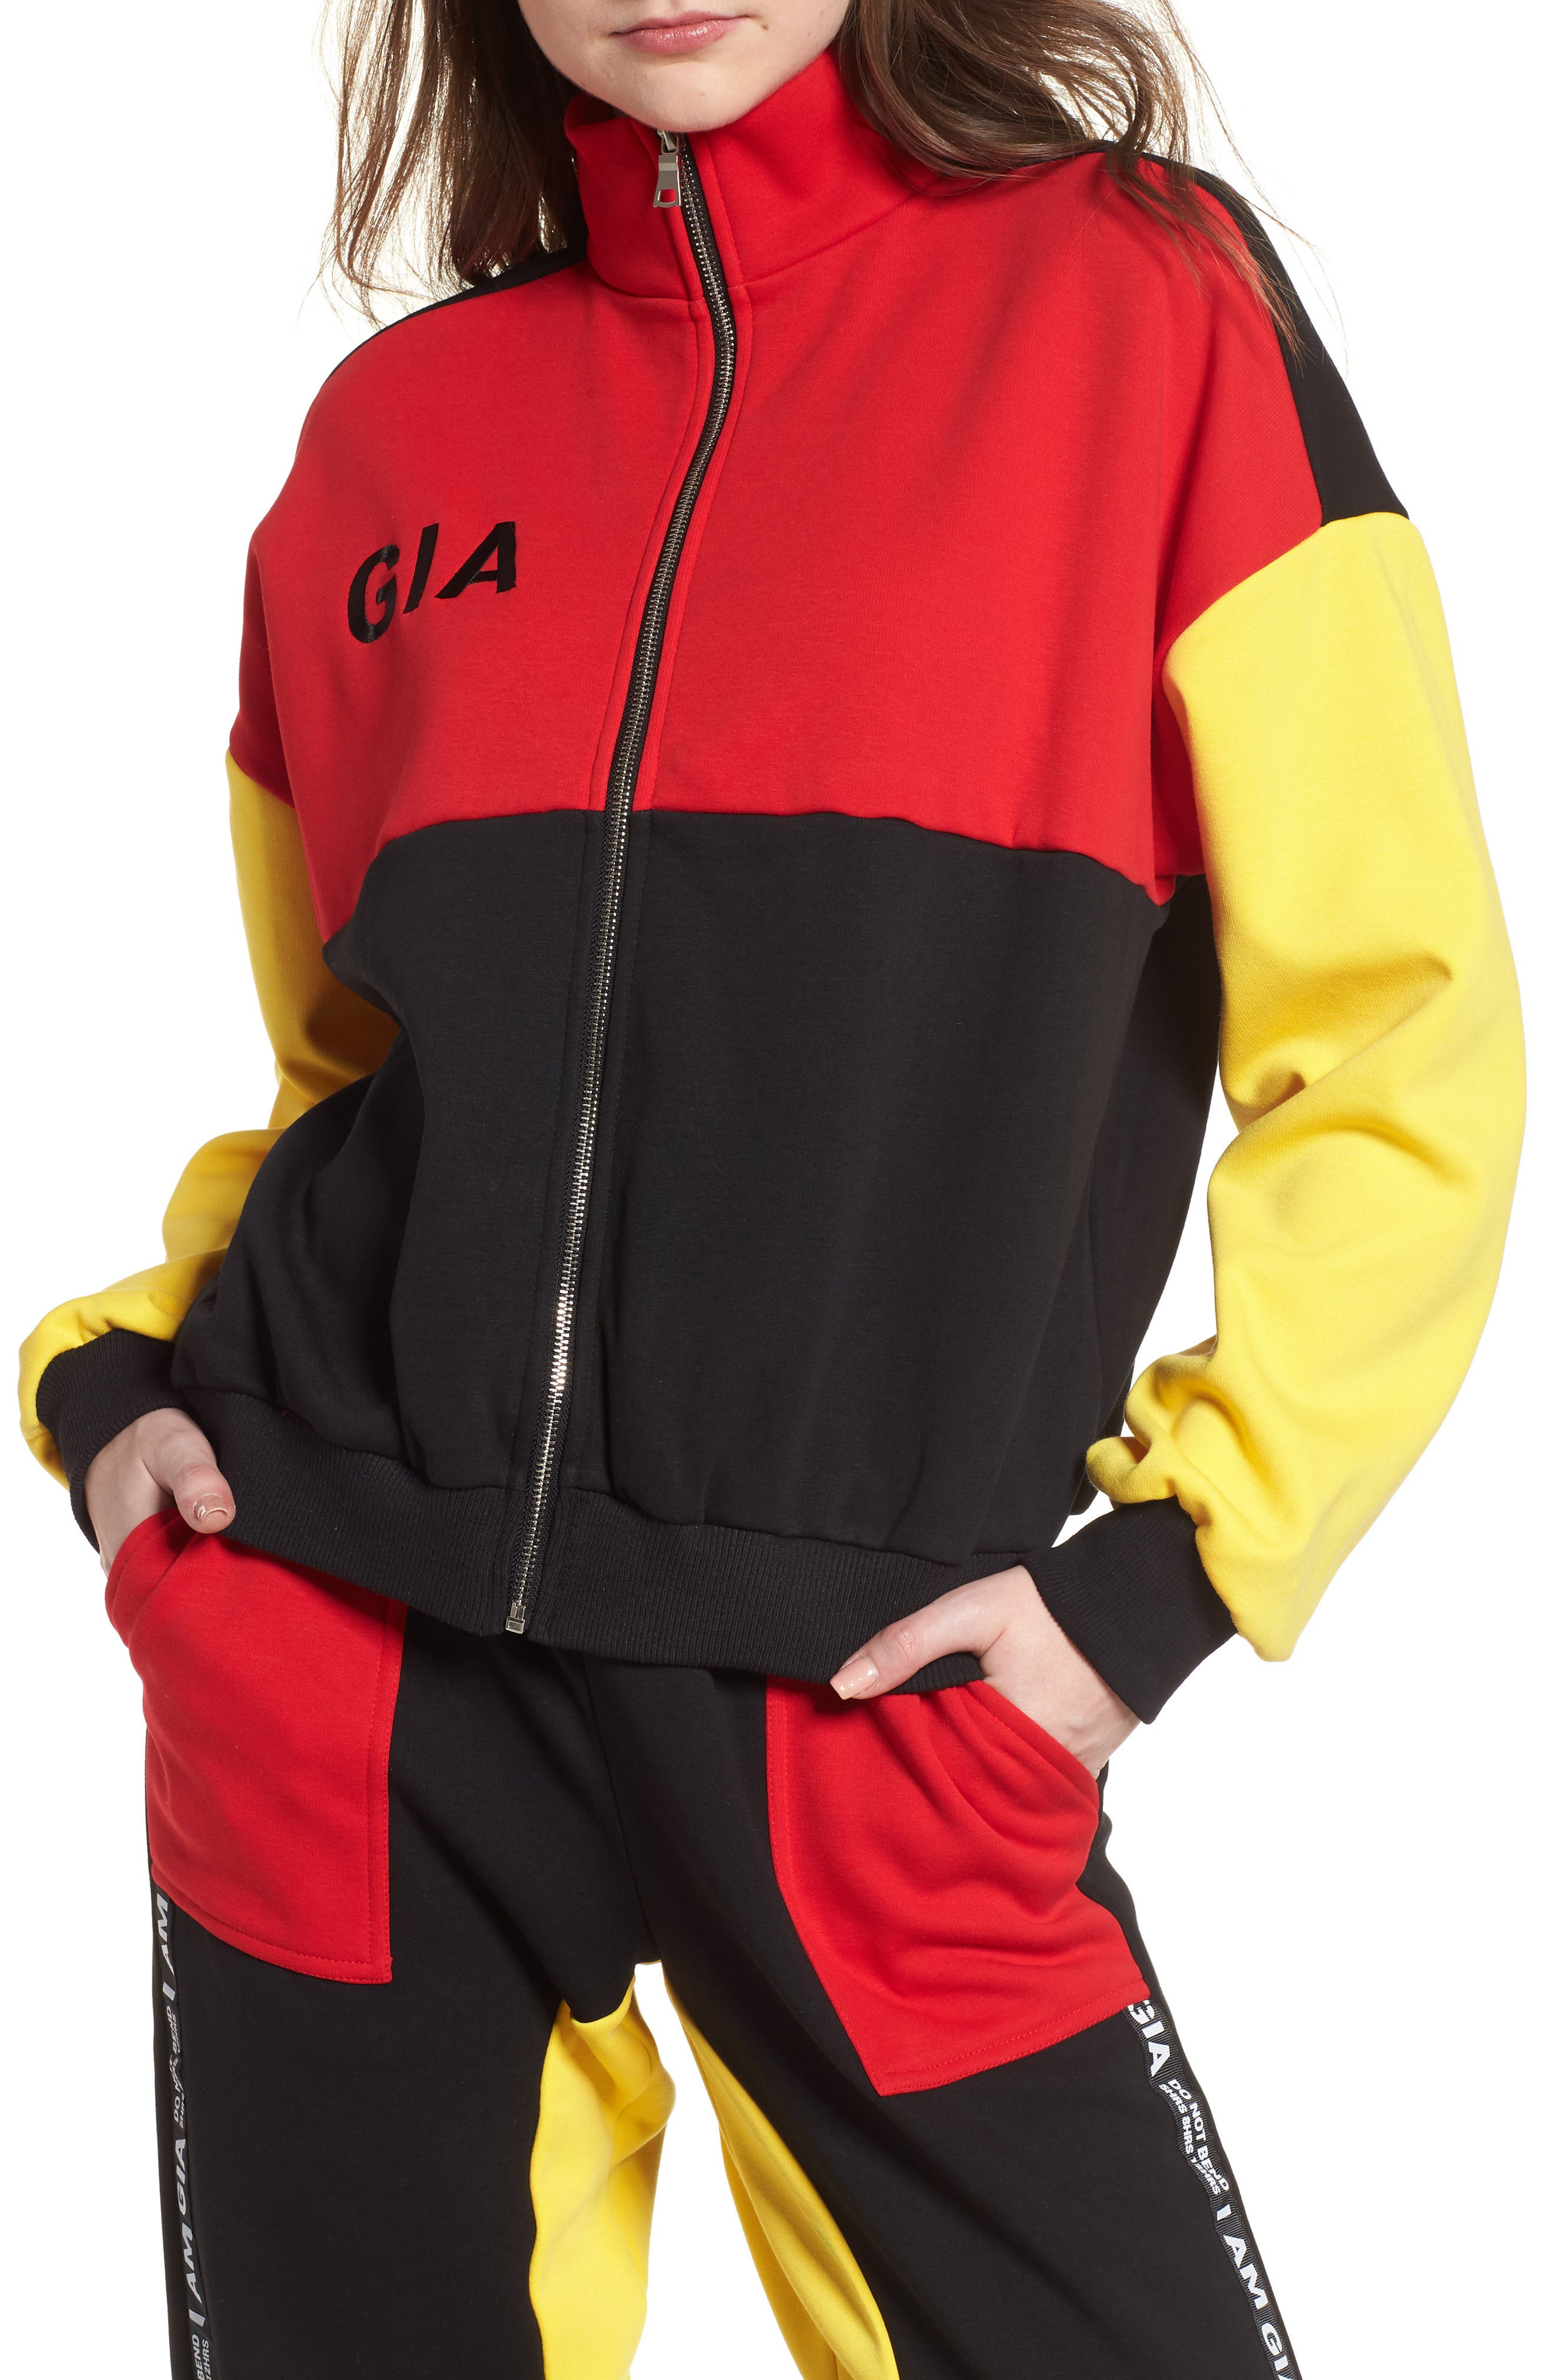 I.AM.GIA Blaster Jacket,                         Main,                         color, Black